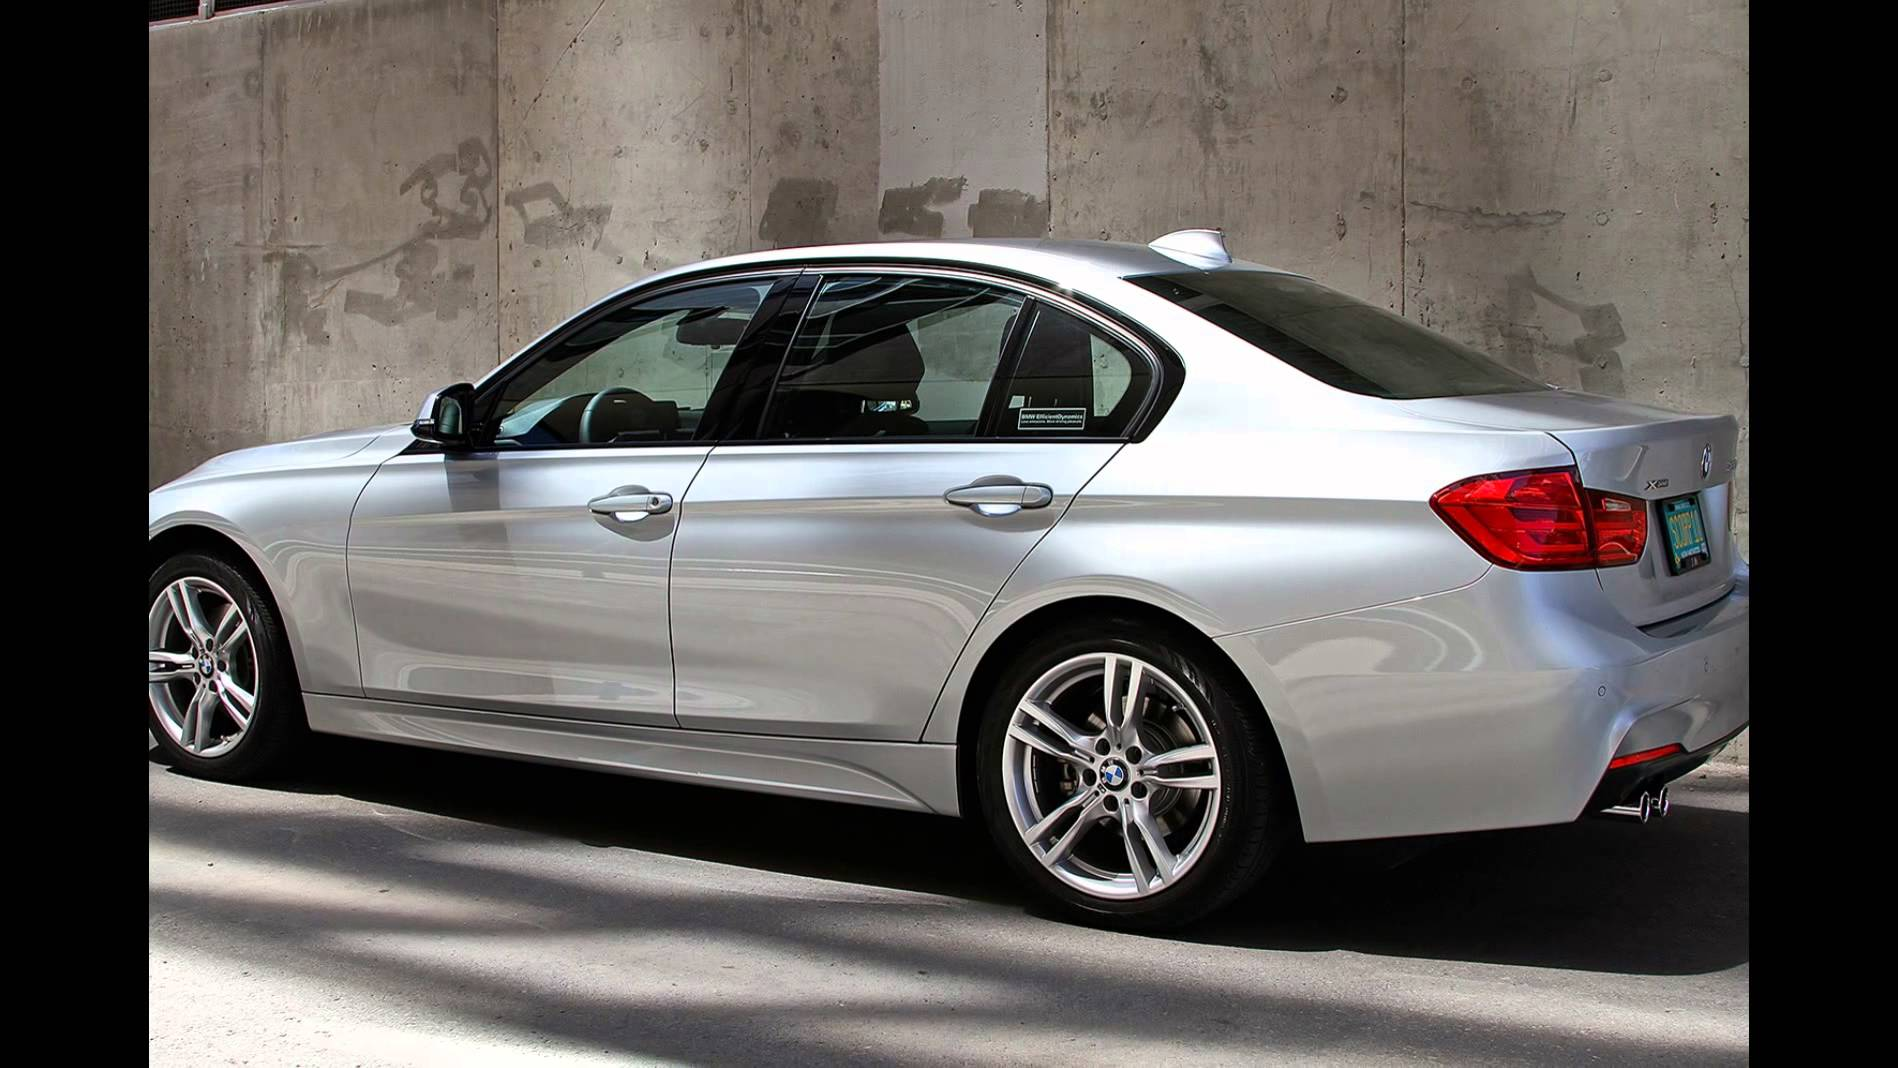 2016 BMW 320i Sedan Glacier Silver Metallic - YouTube